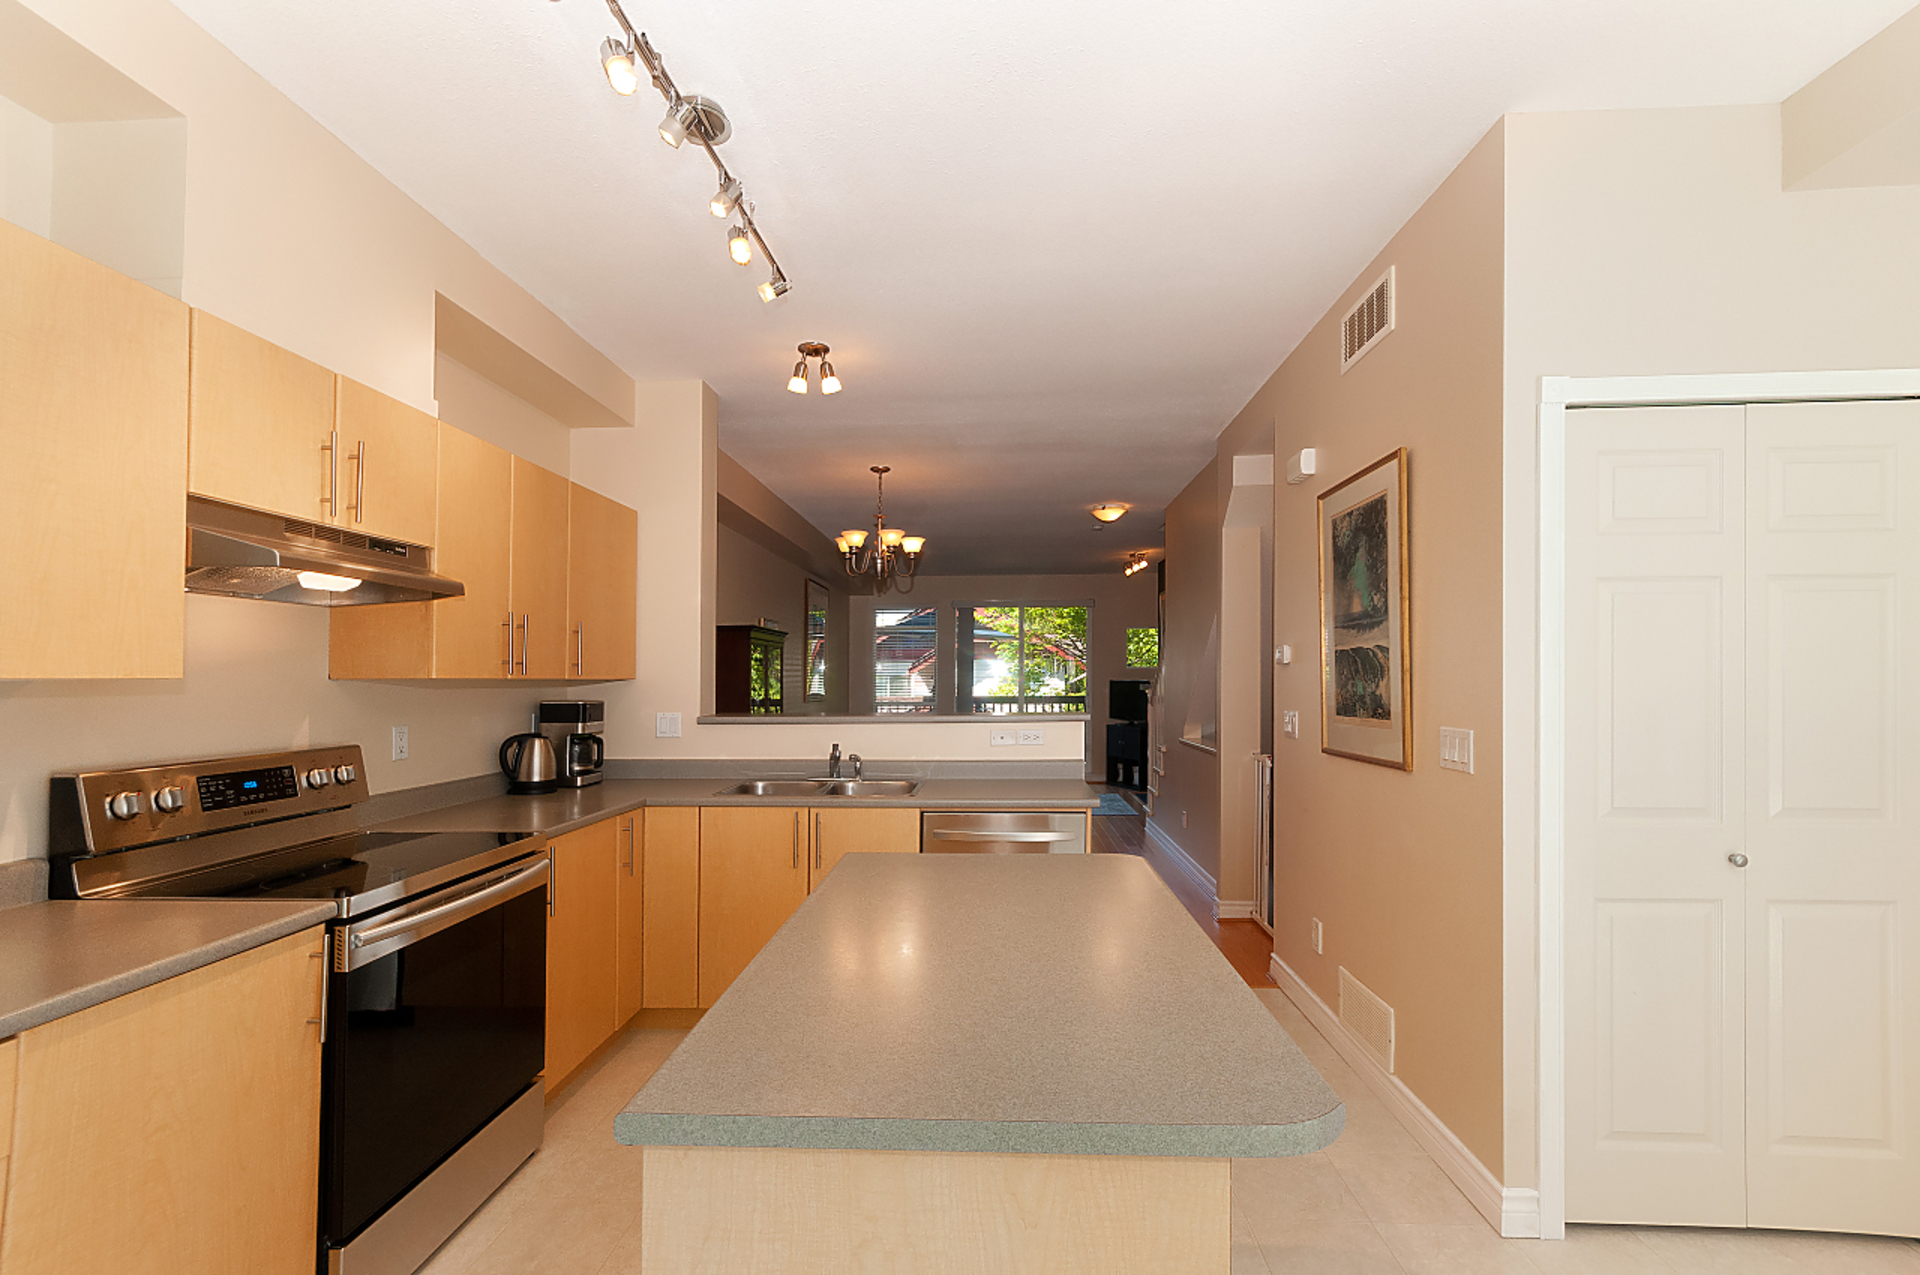 015 at 53 - 15 Forest Park Way, Heritage Woods PM, Port Moody